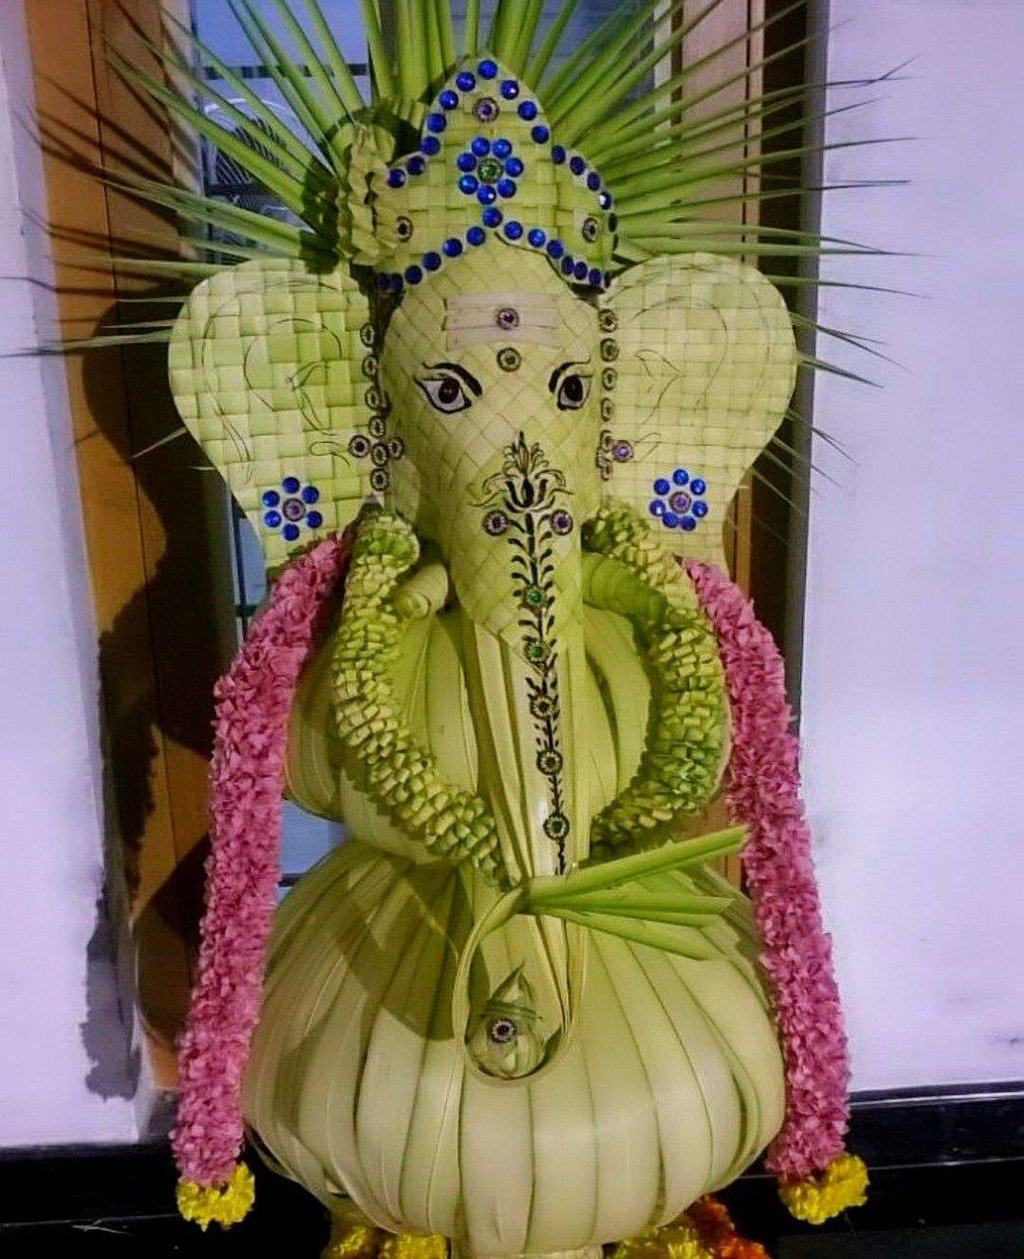 ganesh puja decoration with the help of paan leaves